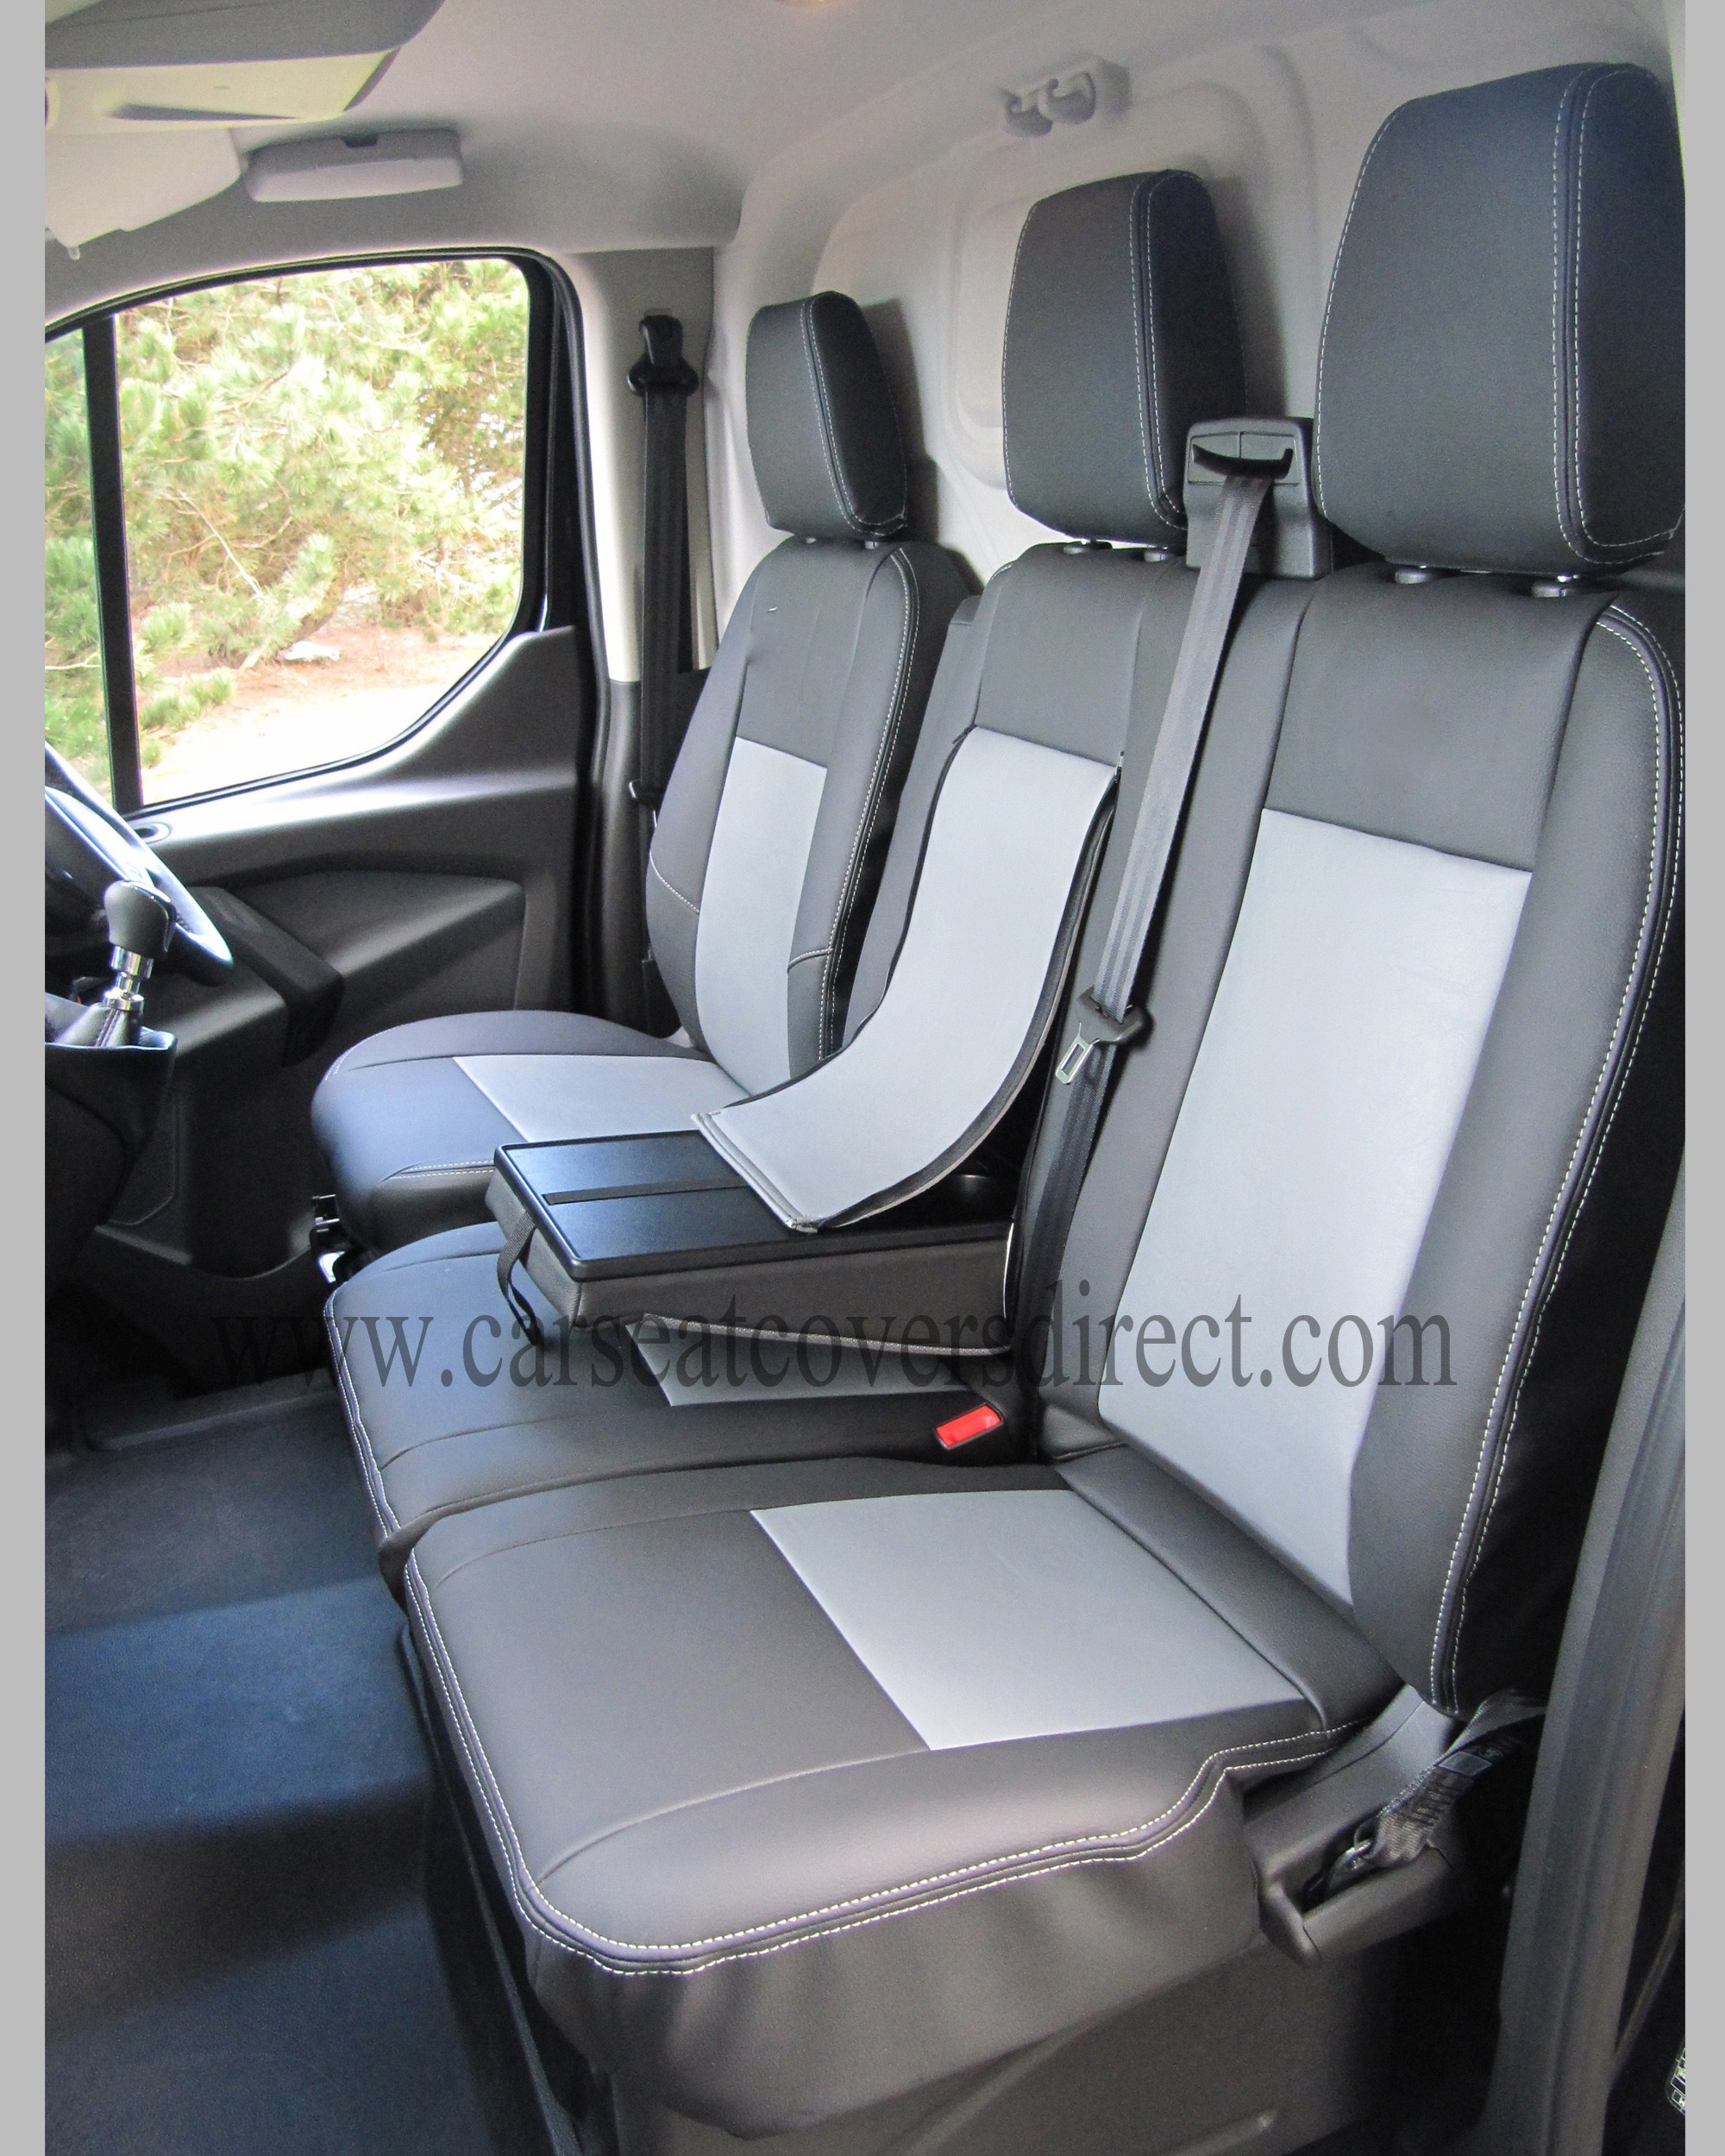 Toyota Seat Covers >> FORD TRANSIT Custom 6TH GEN Black & Grey van seat covers Car Seat Covers Direct - Tailored To ...